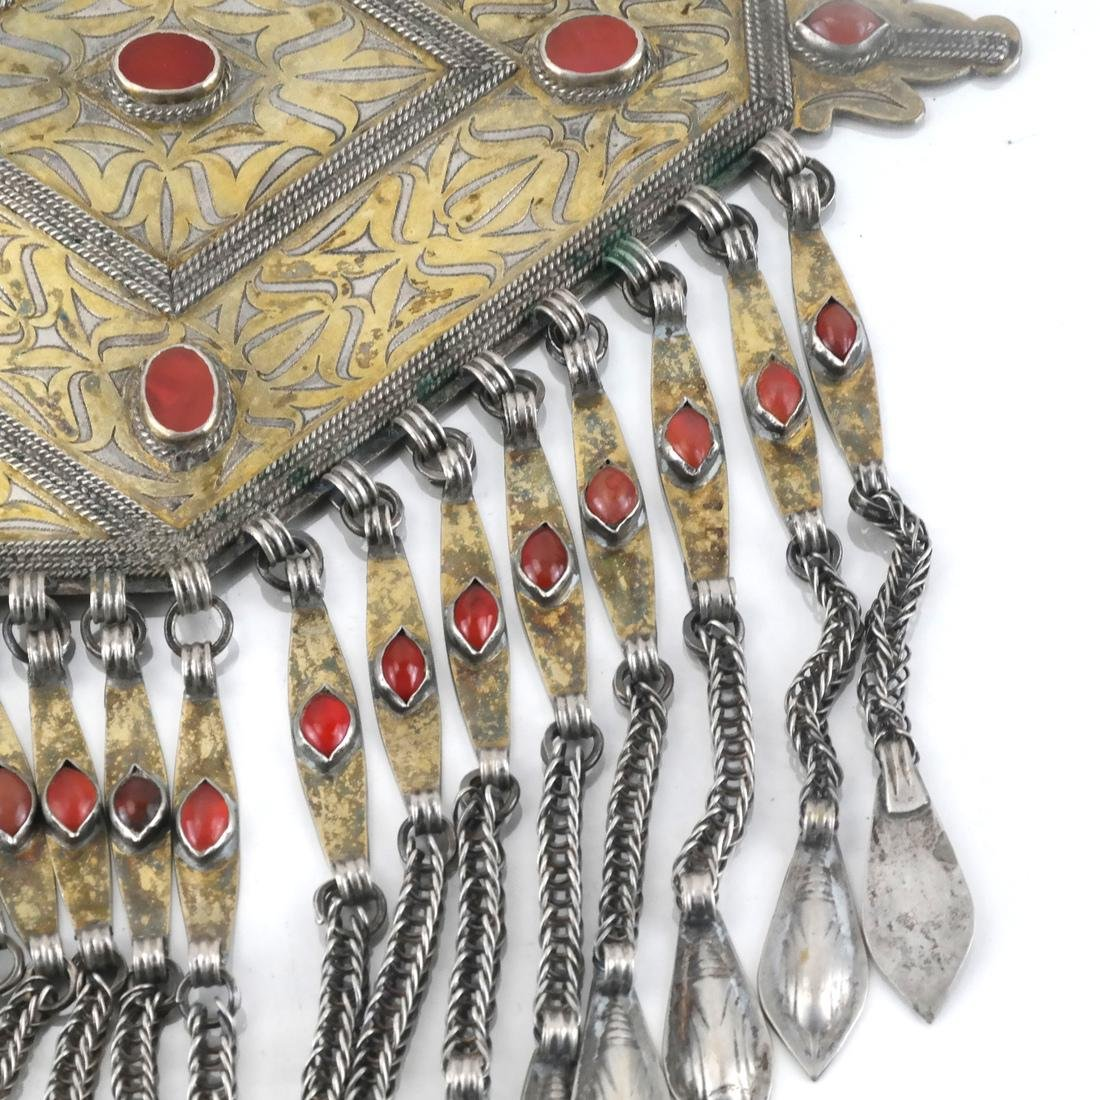 Afghan/Central Asian Antique Jeweled Breastplate - 2